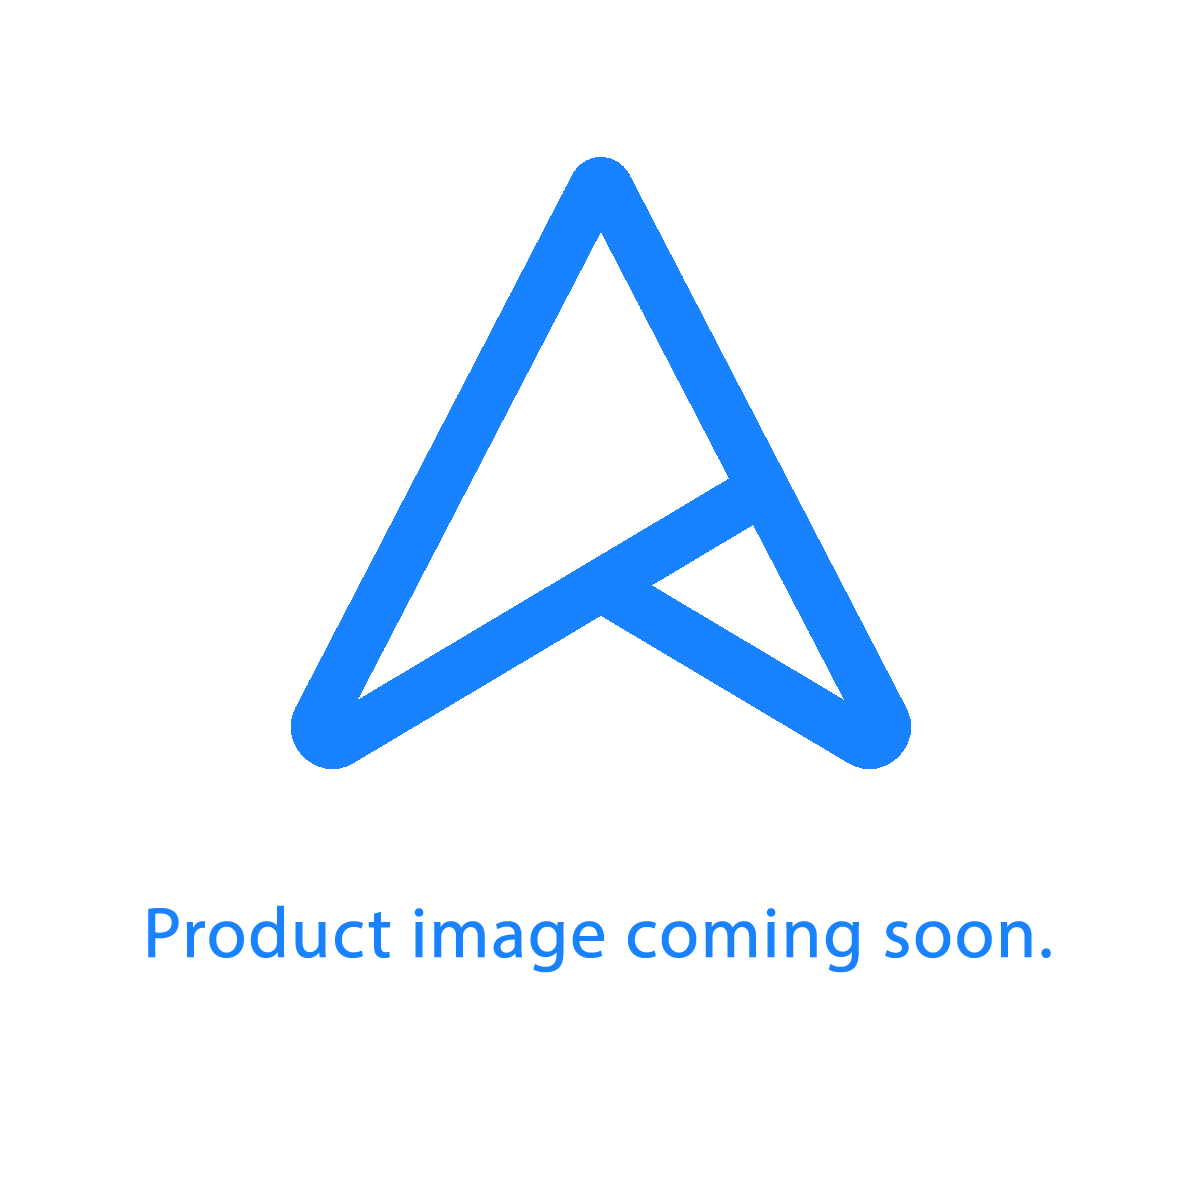 ROG Zephyrus G14 GA401II-GTX1650T1 with AniMe Matrix™